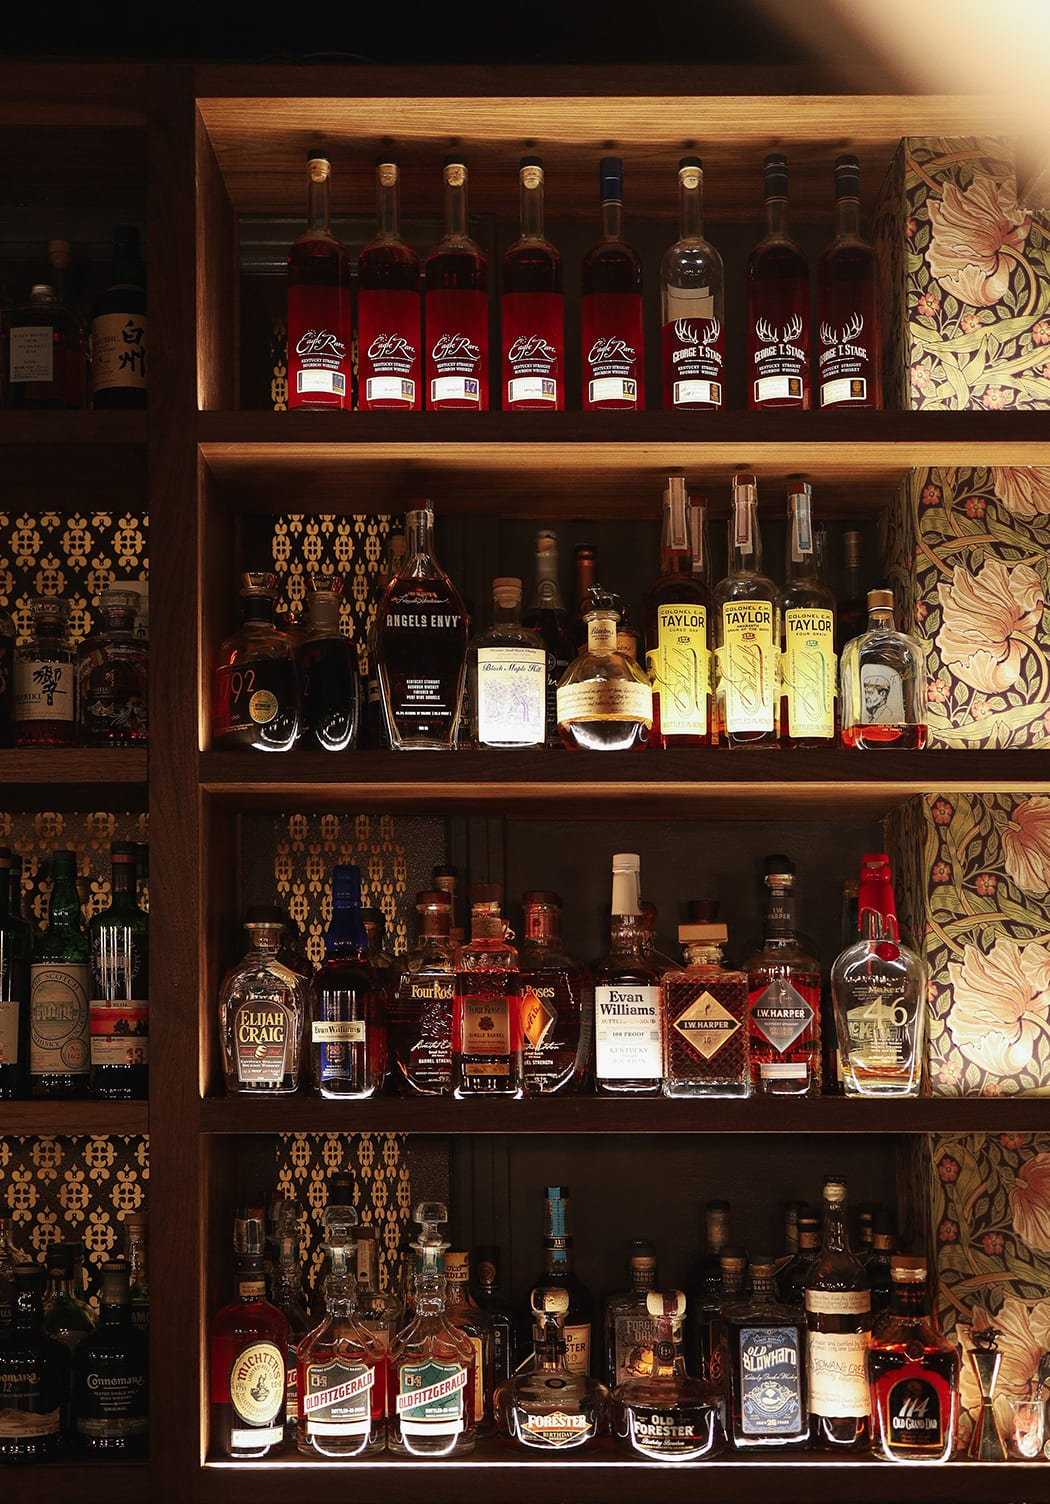 Beyond cocktails, the bar's a whisky selection is impressive in its breadth, especially given the space restraint